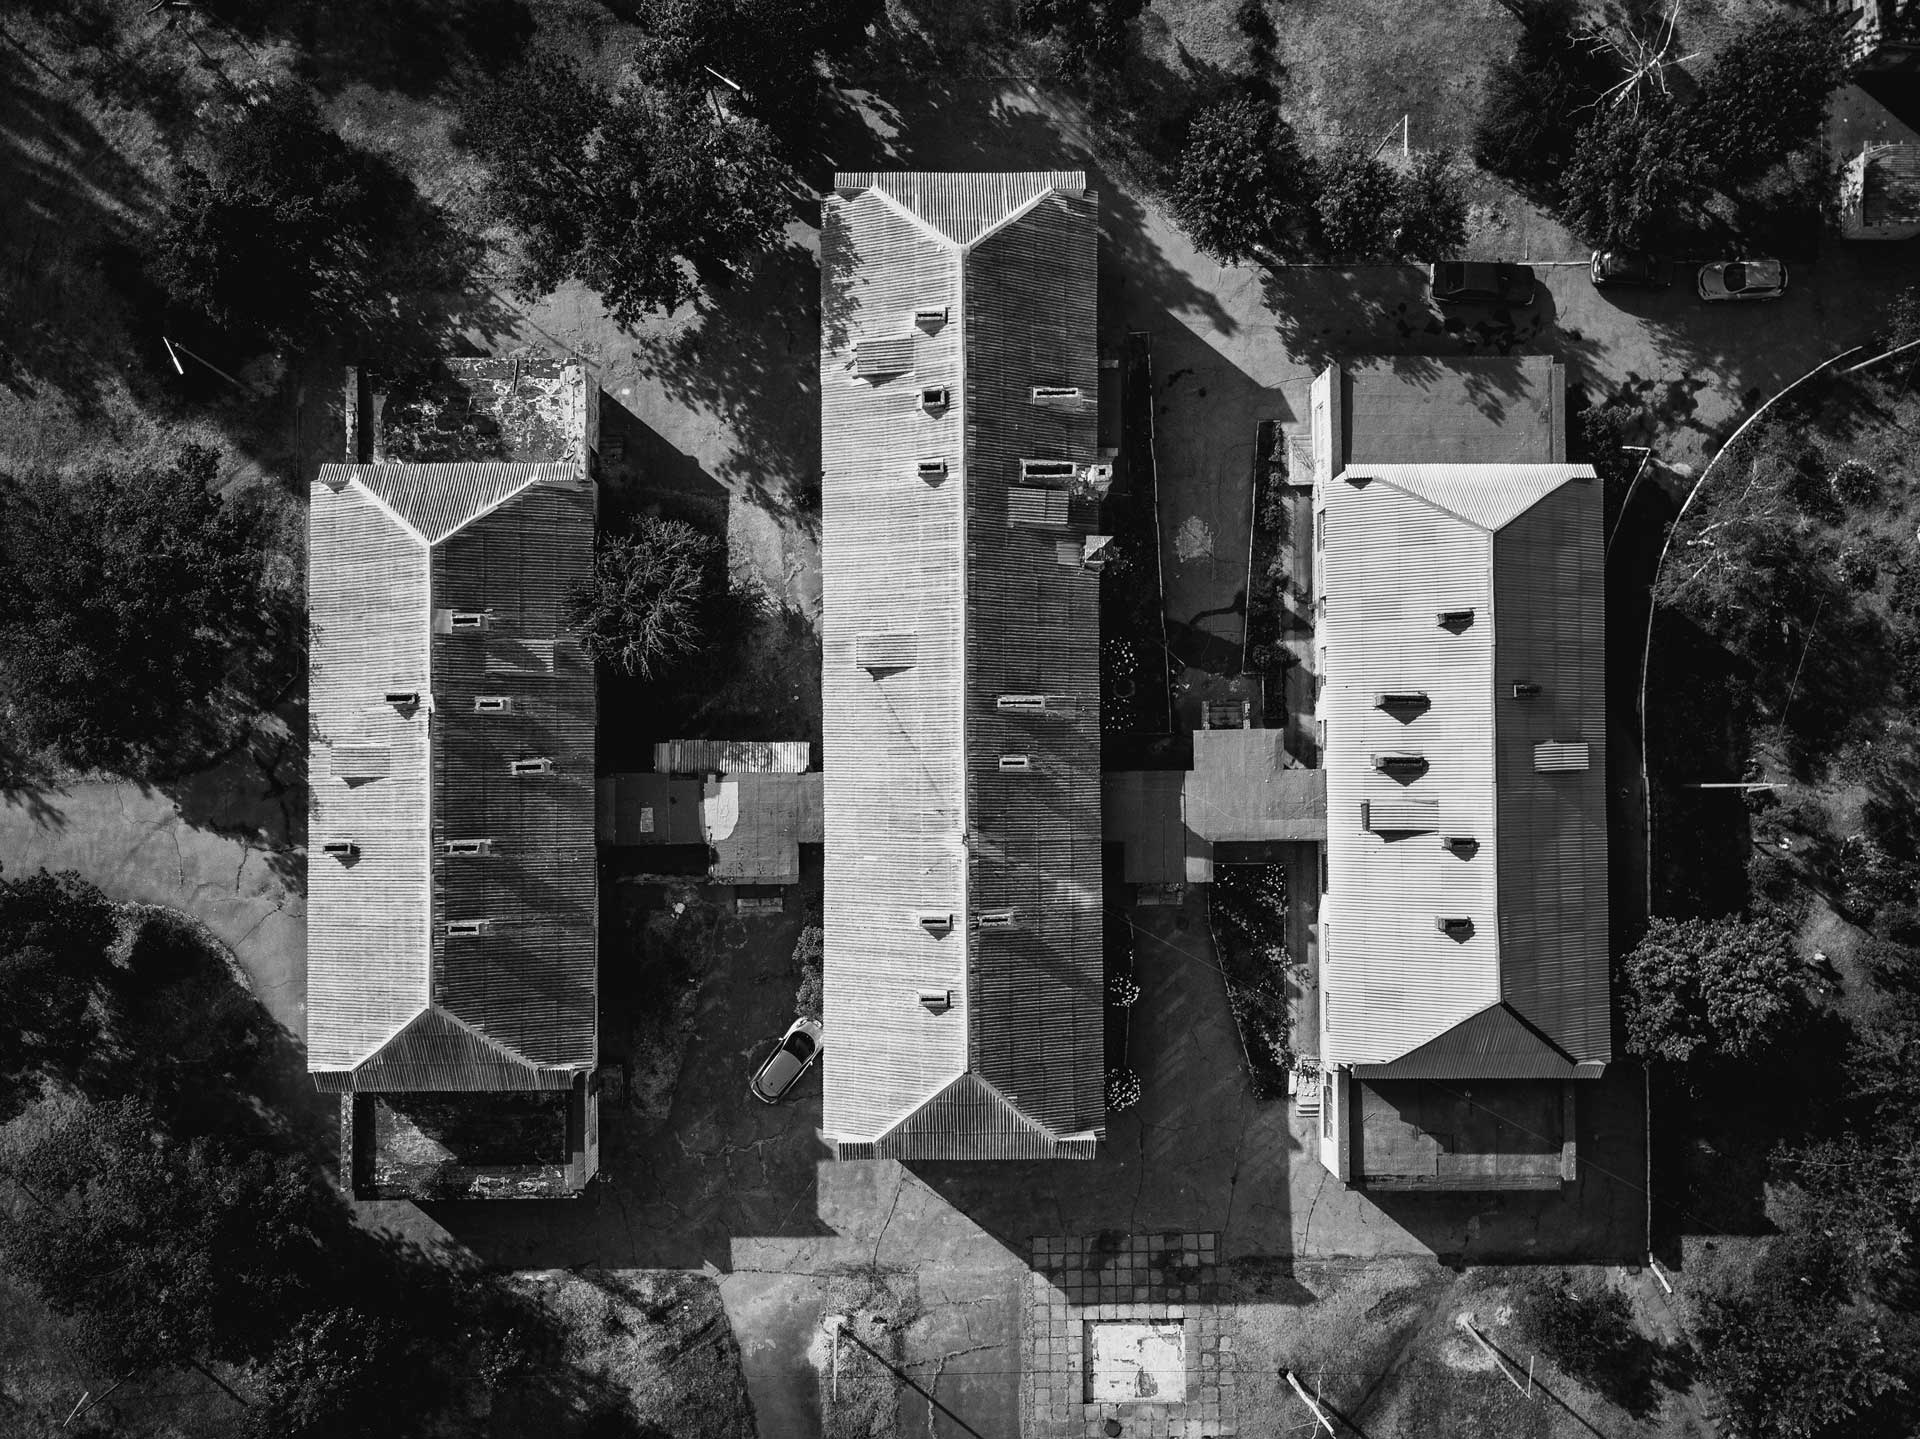 Black-and-white aerial view of the roofs of 3 homes